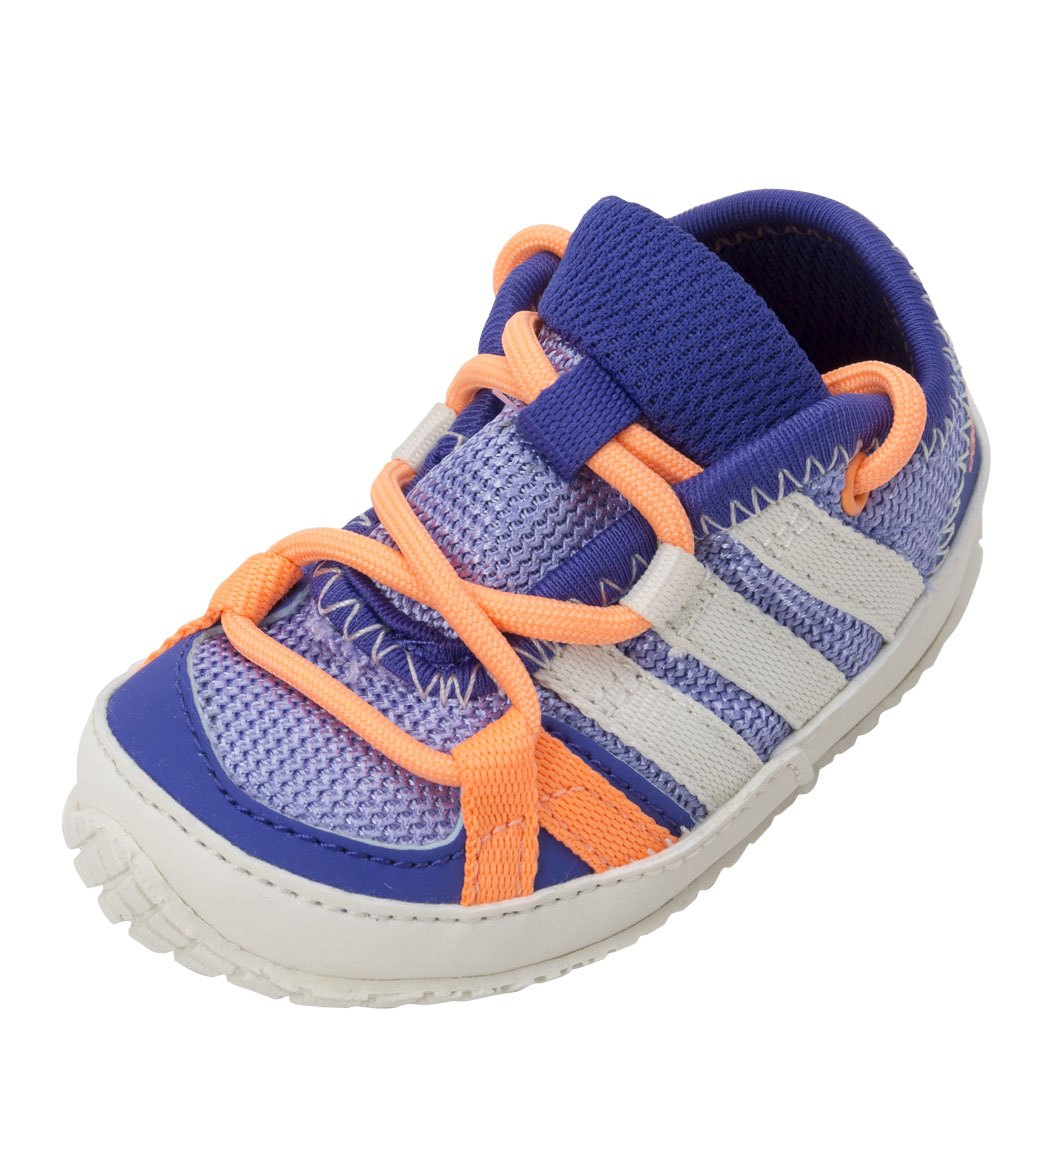 9e33c21691e Adidas Girls  Boat Lace I Water Shoes at SwimOutlet.com